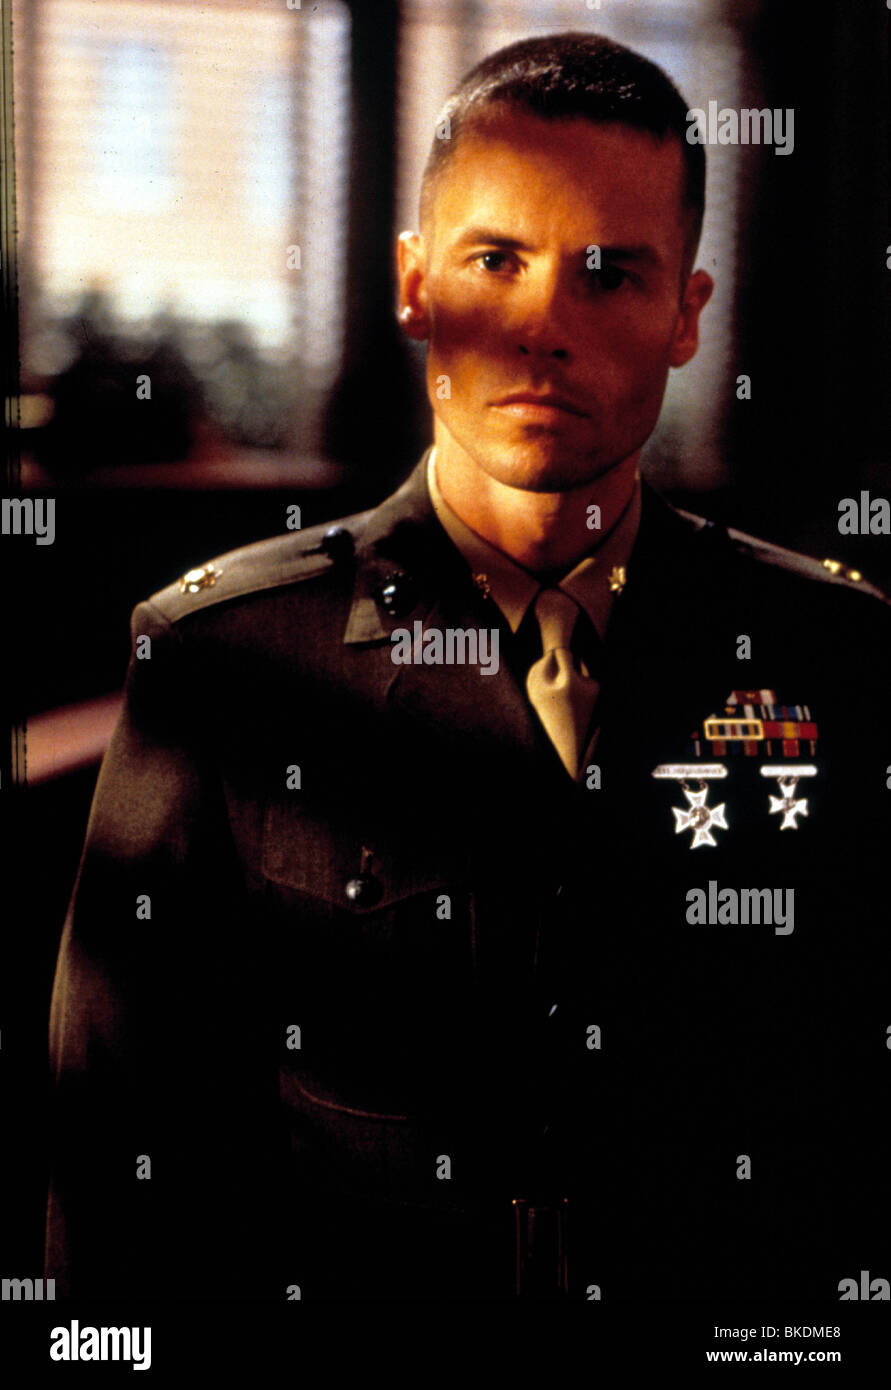 RULES OF ENGAGEMENT (2000) GUY PEARCE RULE 100 - Stock Image